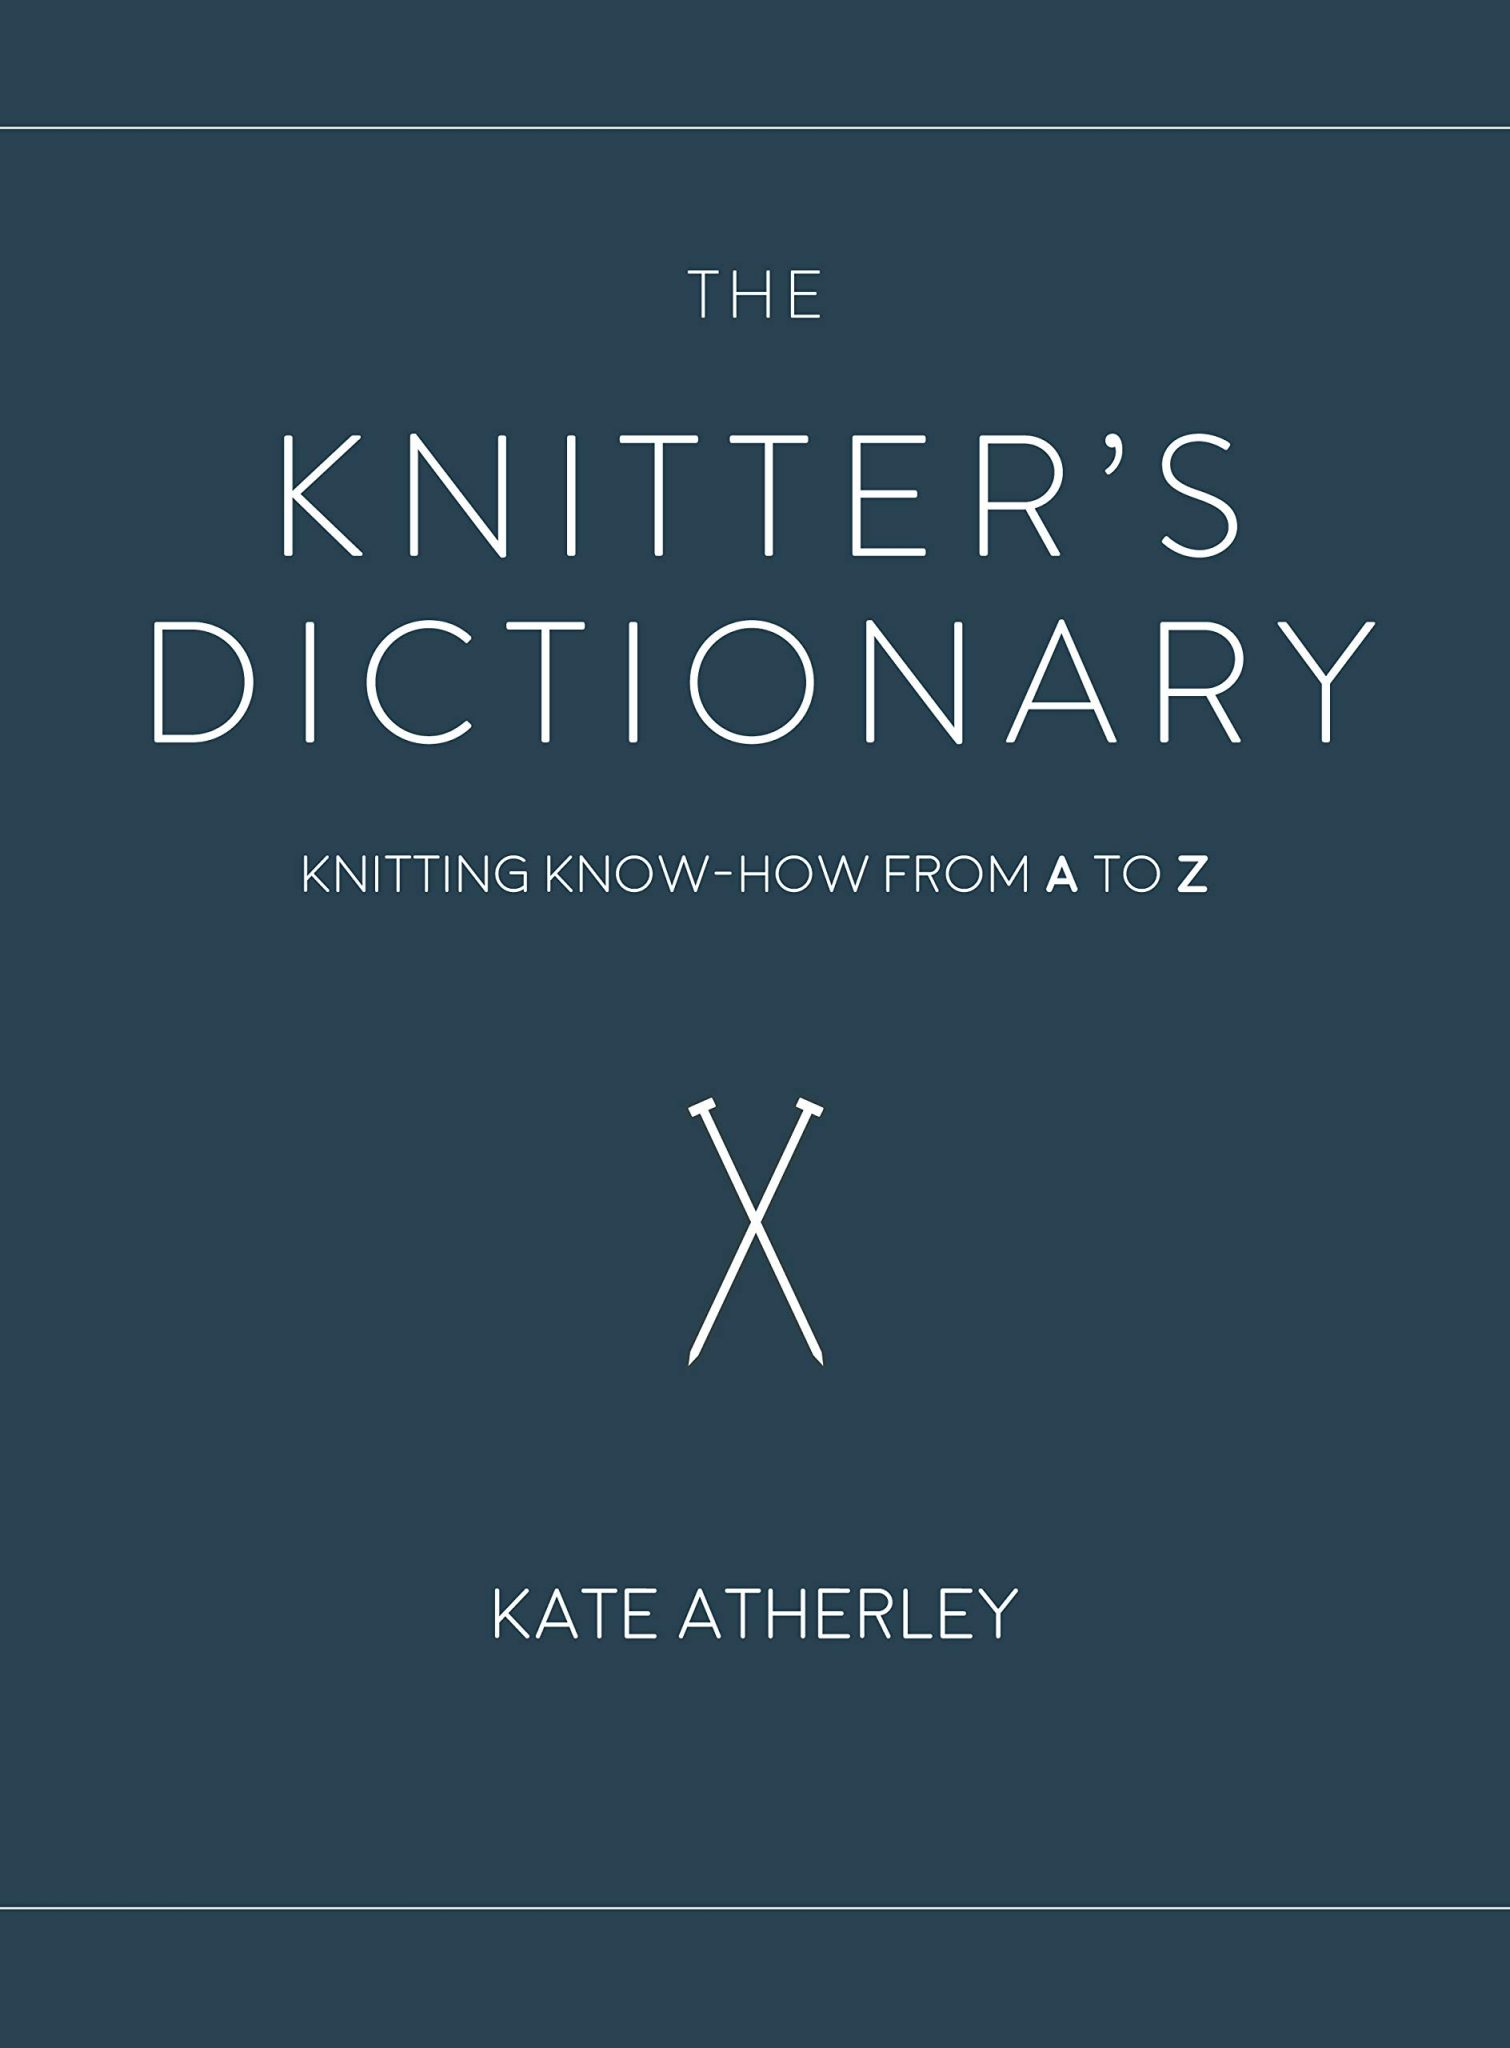 THE KNITTER'S DICTIONARY: Knitting Know-How from A-to-Z by Kate Atherley